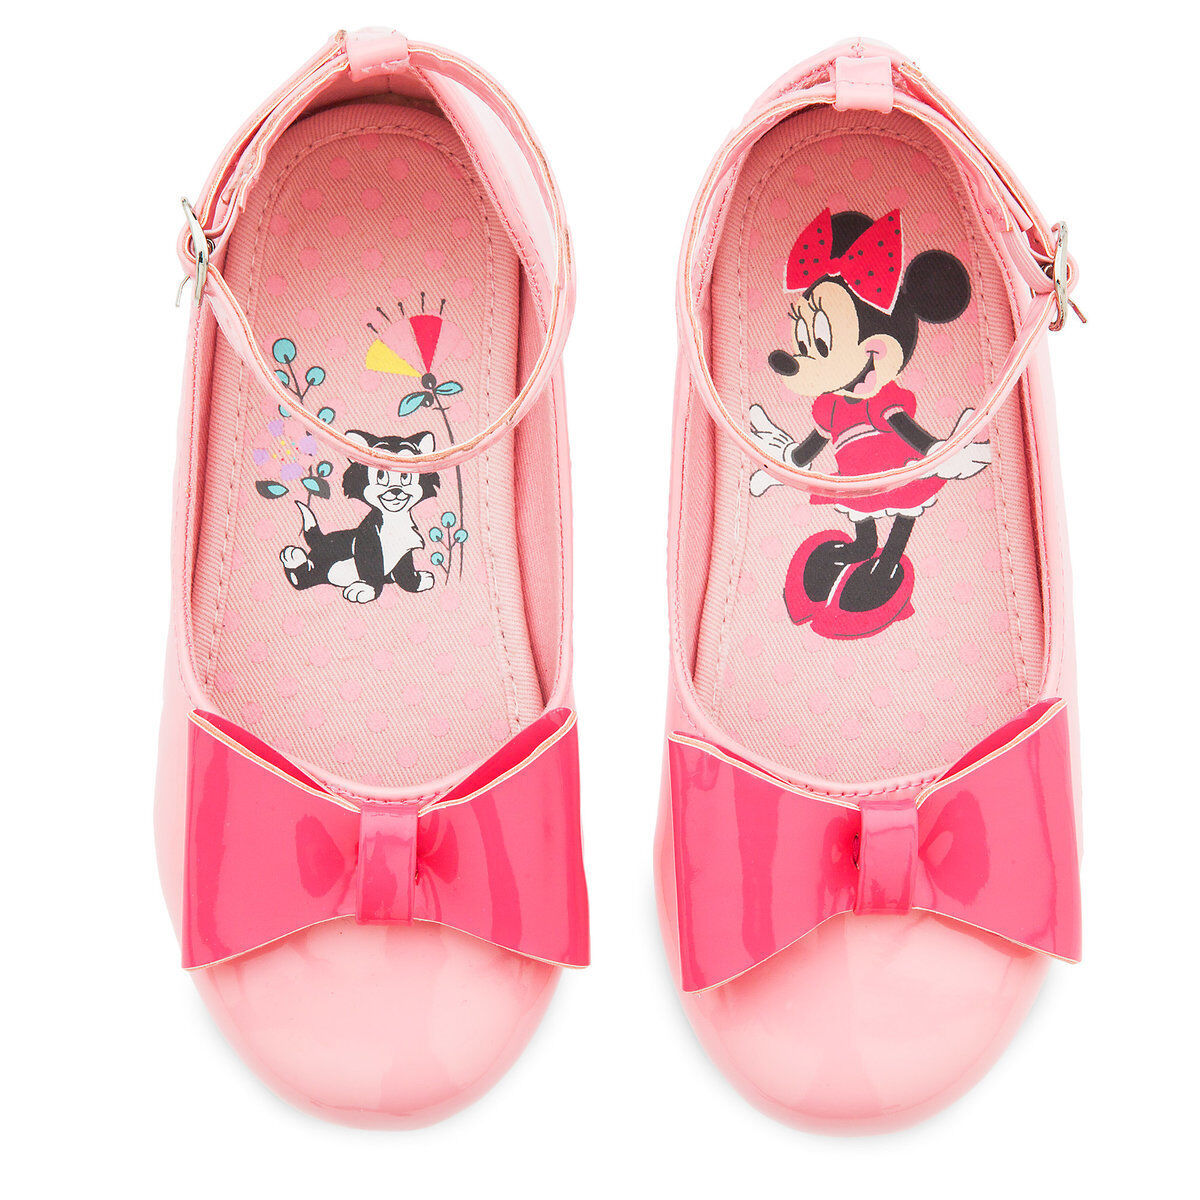 NWT Disney Store Minnie Mouse Pink Flats Shoes many sizes Girls